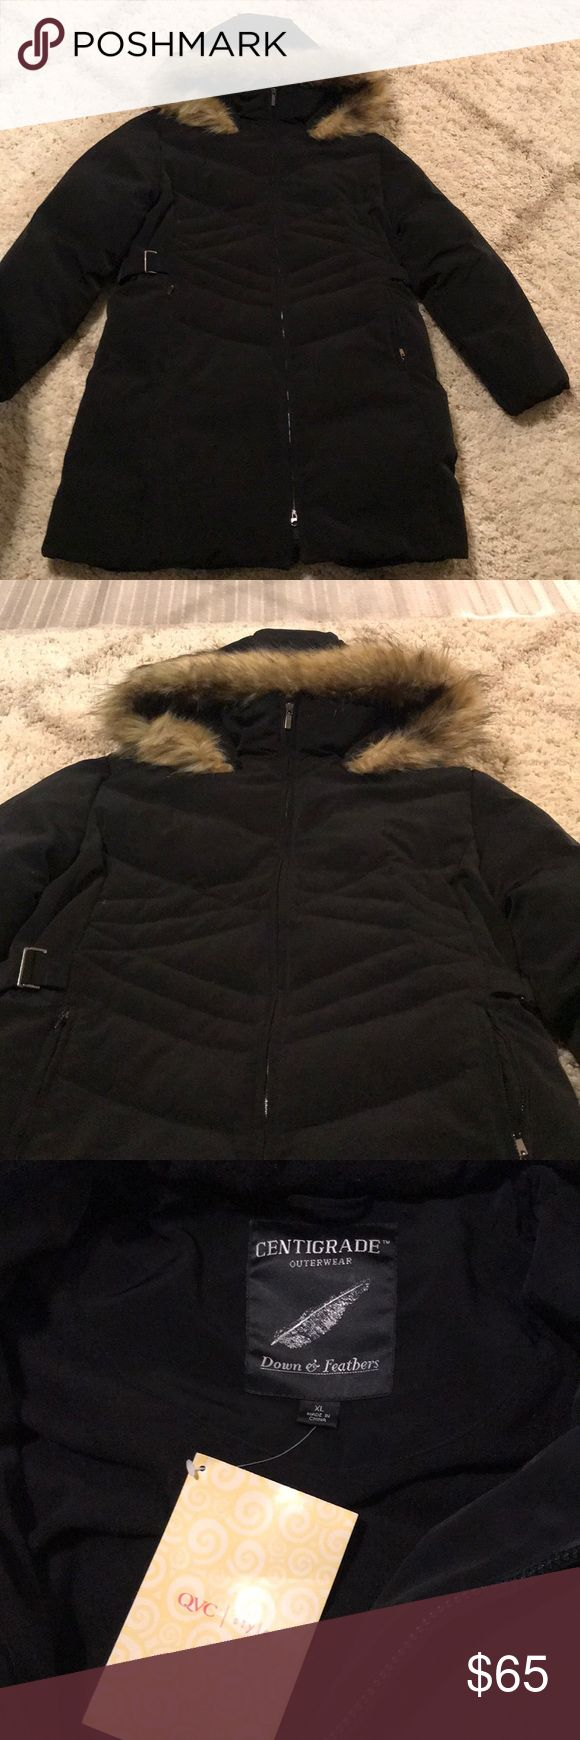 New Black Centigrade Coat Down Feathers Size Xl New Black Clothes Design Jackets For Women [ 1740 x 580 Pixel ]